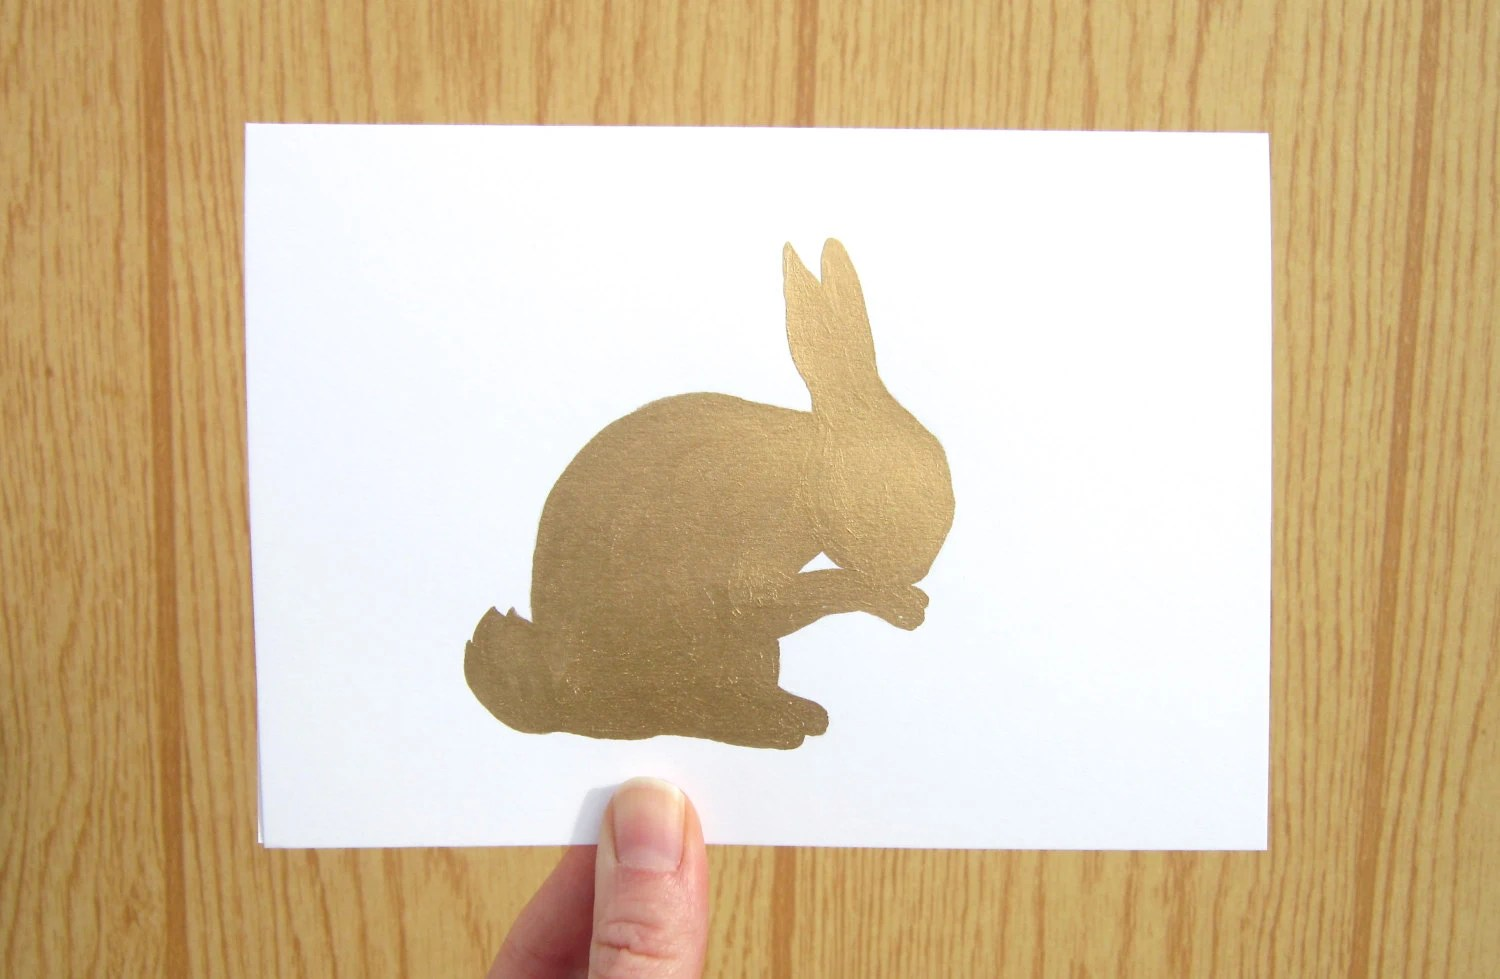 Brass Rabbit Card - Hand painted original card based on brass rabbit figurine - Valentine's Day card, Easter card, Blank card, Birthday card - WingedWorld